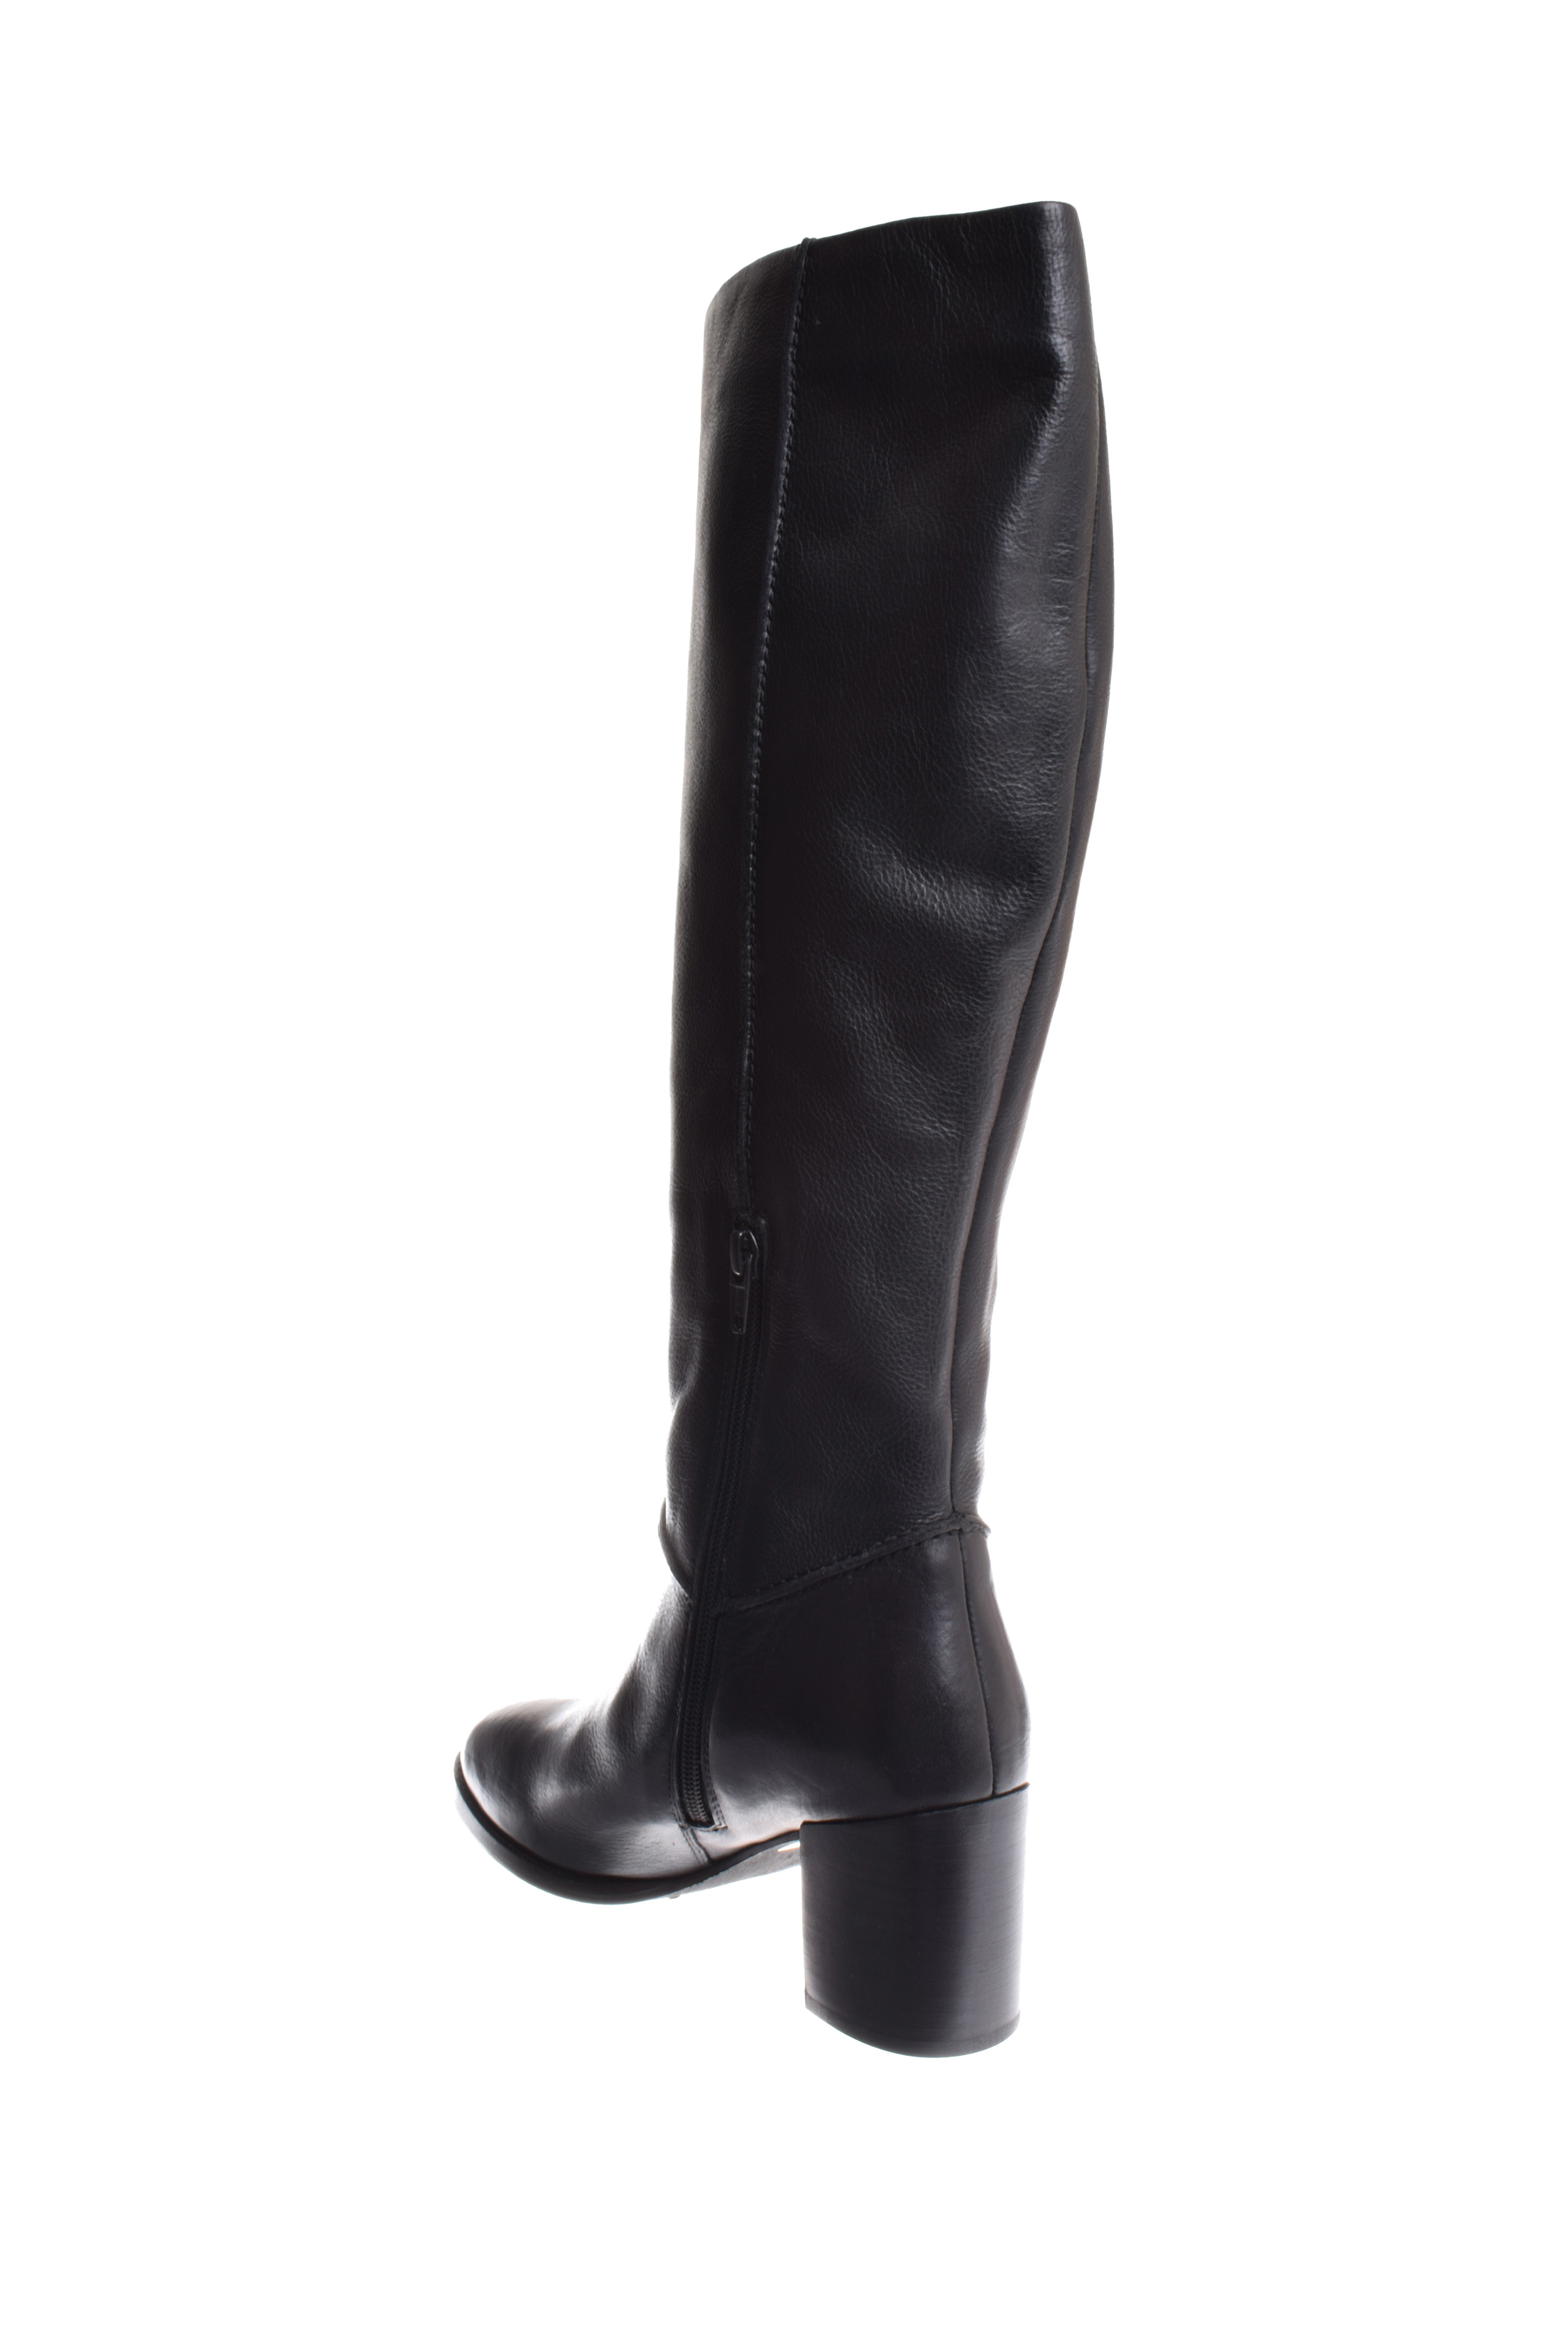 Seychelles Final Bow Knee High Leather Boot - Black